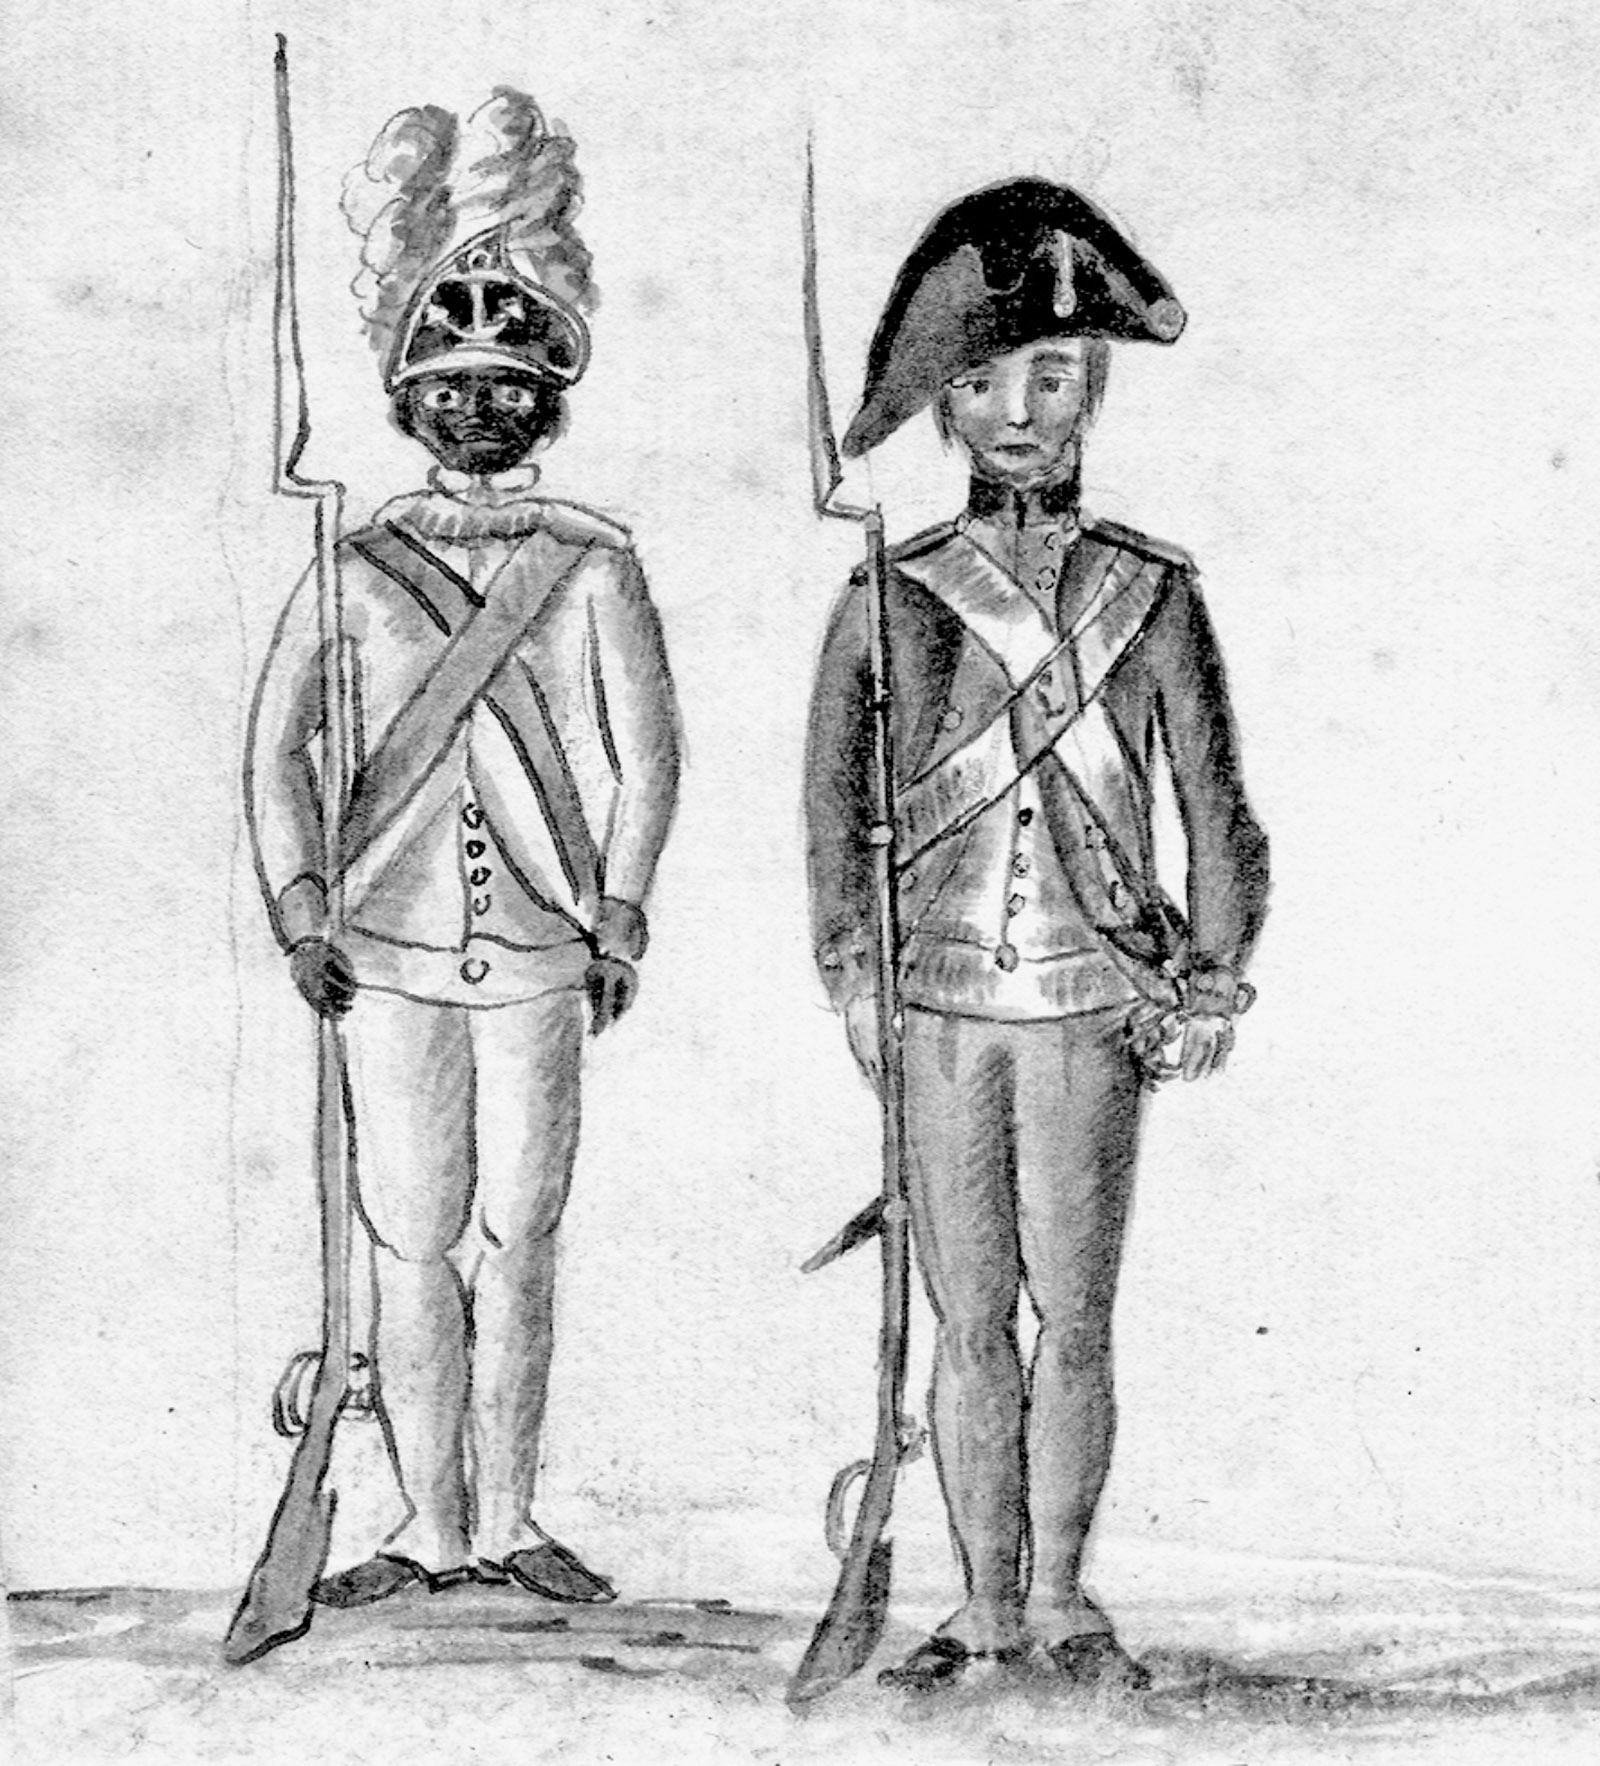 At left, a black soldier in the Yorktown campaign; detail of a sketch by Jean Baptiste Antoine de Verger, circa 1781